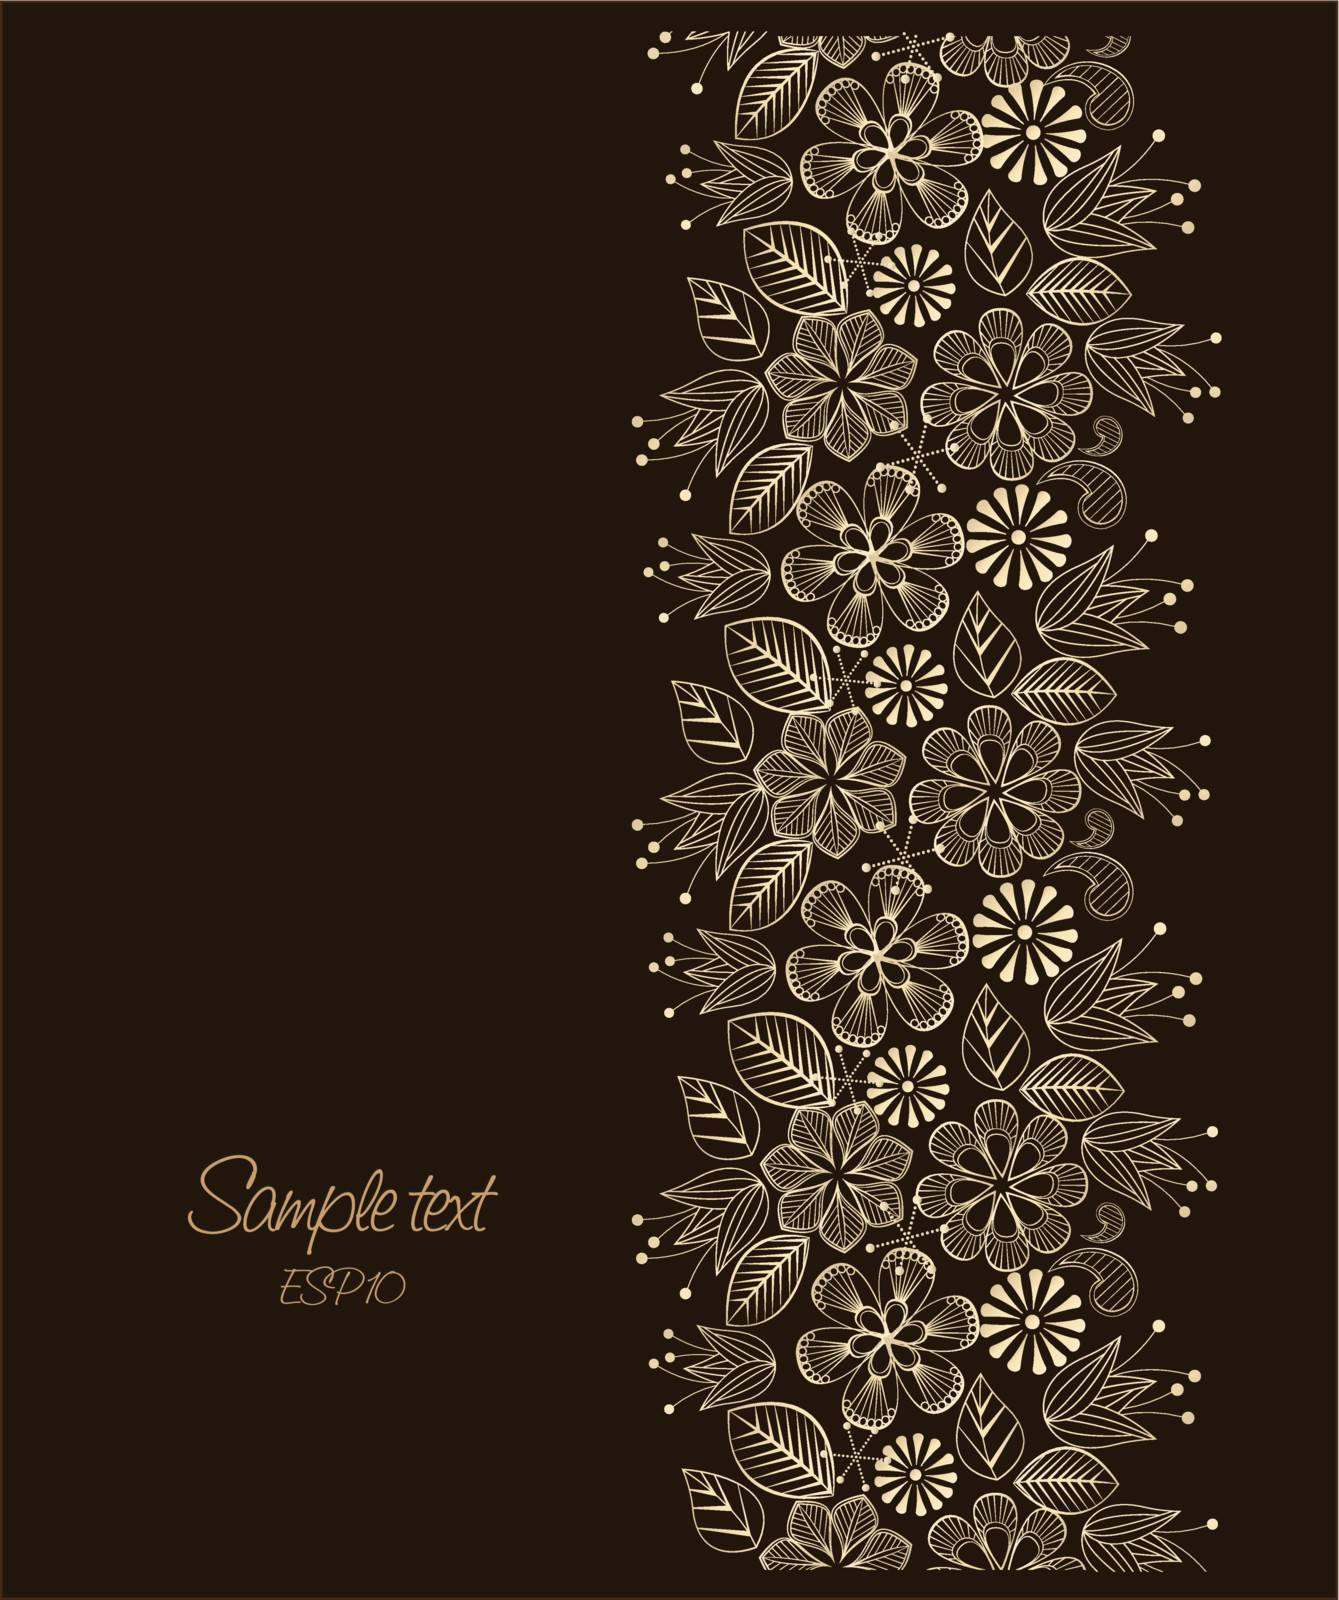 Beauty floral illustration, place for your text